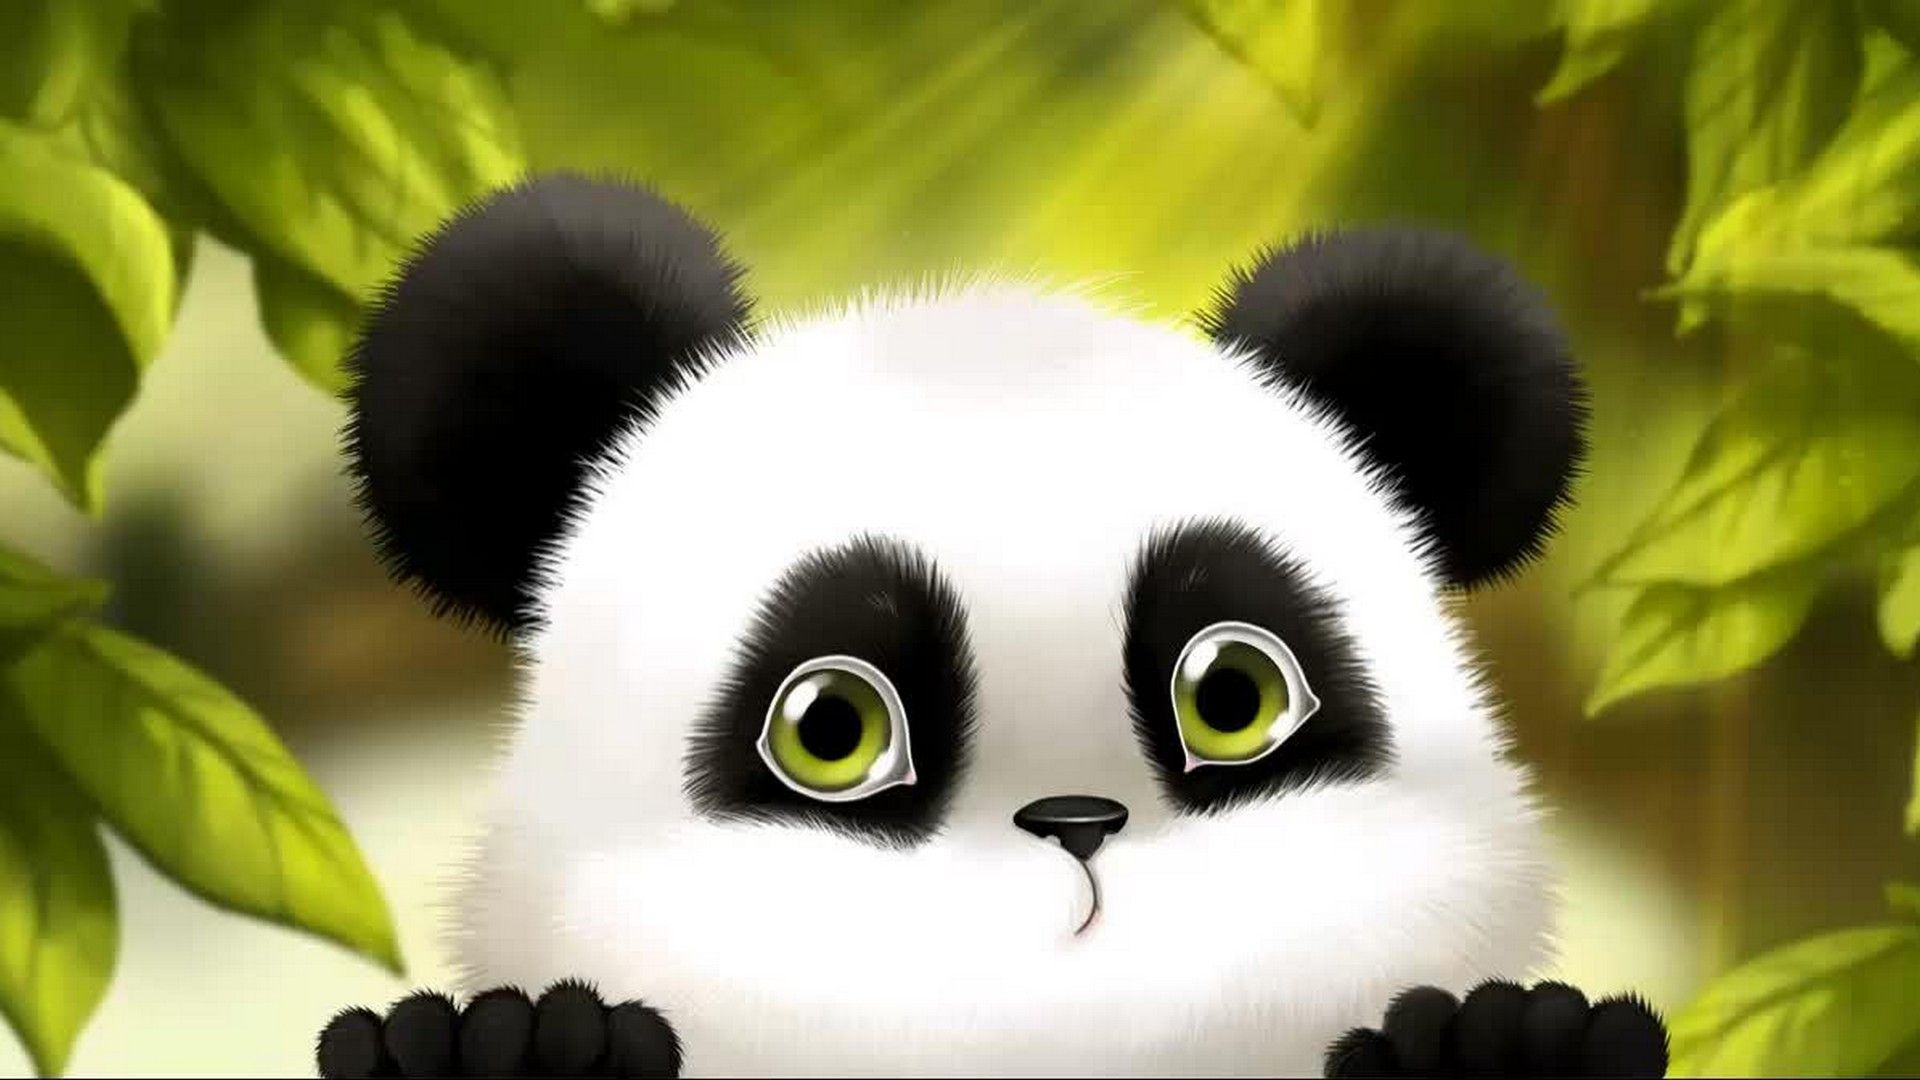 Cute Baby Panda Cartoon Wallpaper Best Hd Wallpapers Panda Images Panda Background Cartoon Panda